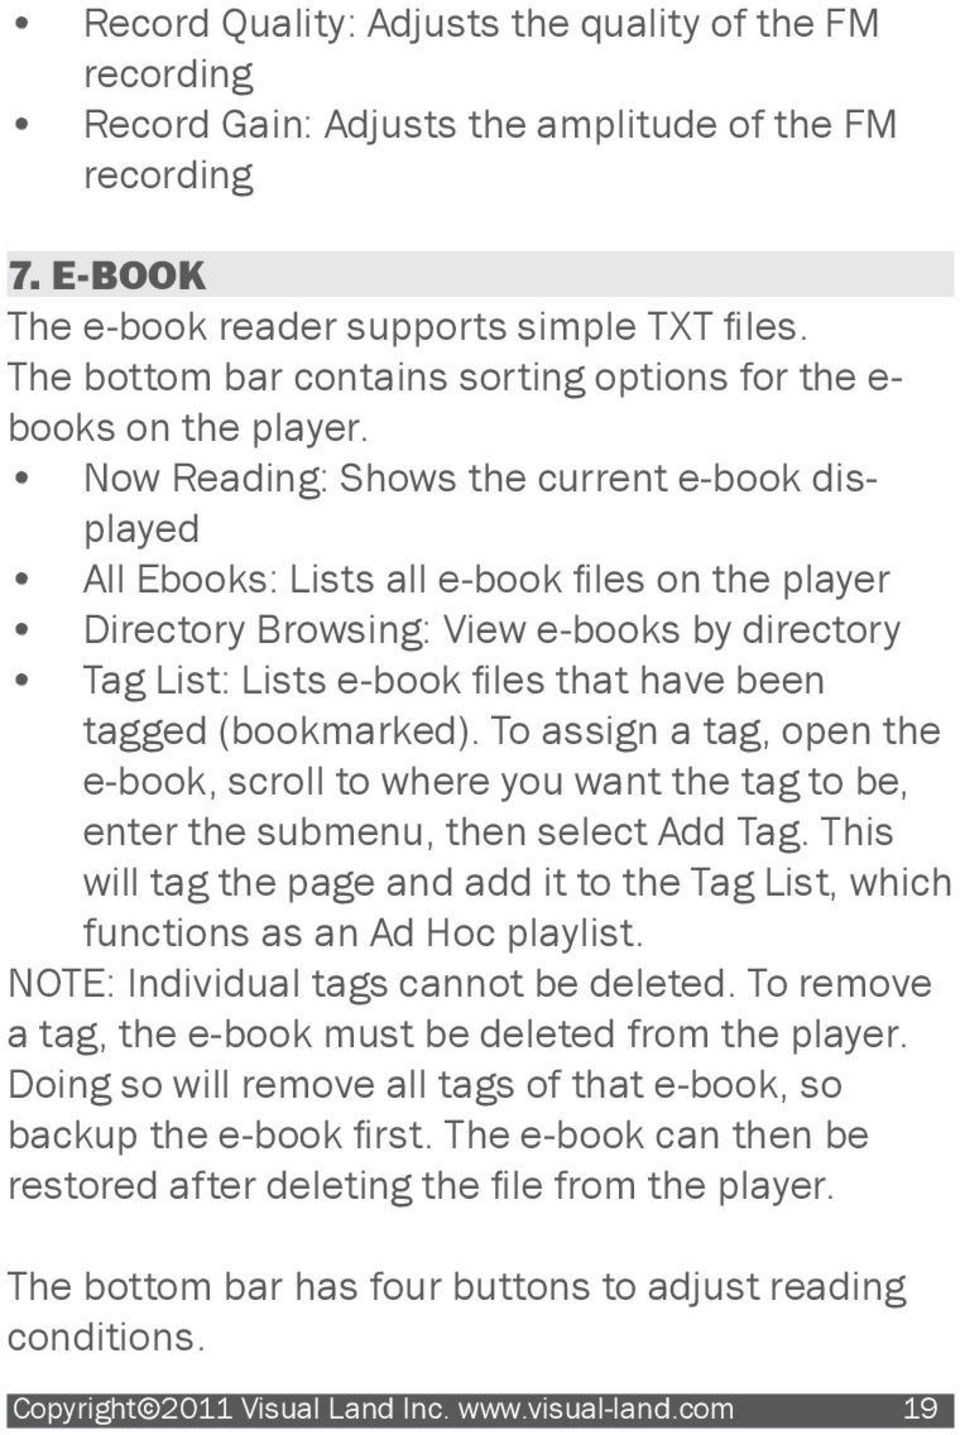 Now Reading: Shows the current e-book displayed All Ebooks: Lists all e-book files on the player Directory Browsing: View e-books by directory Tag List: Lists e-book files that have been tagged